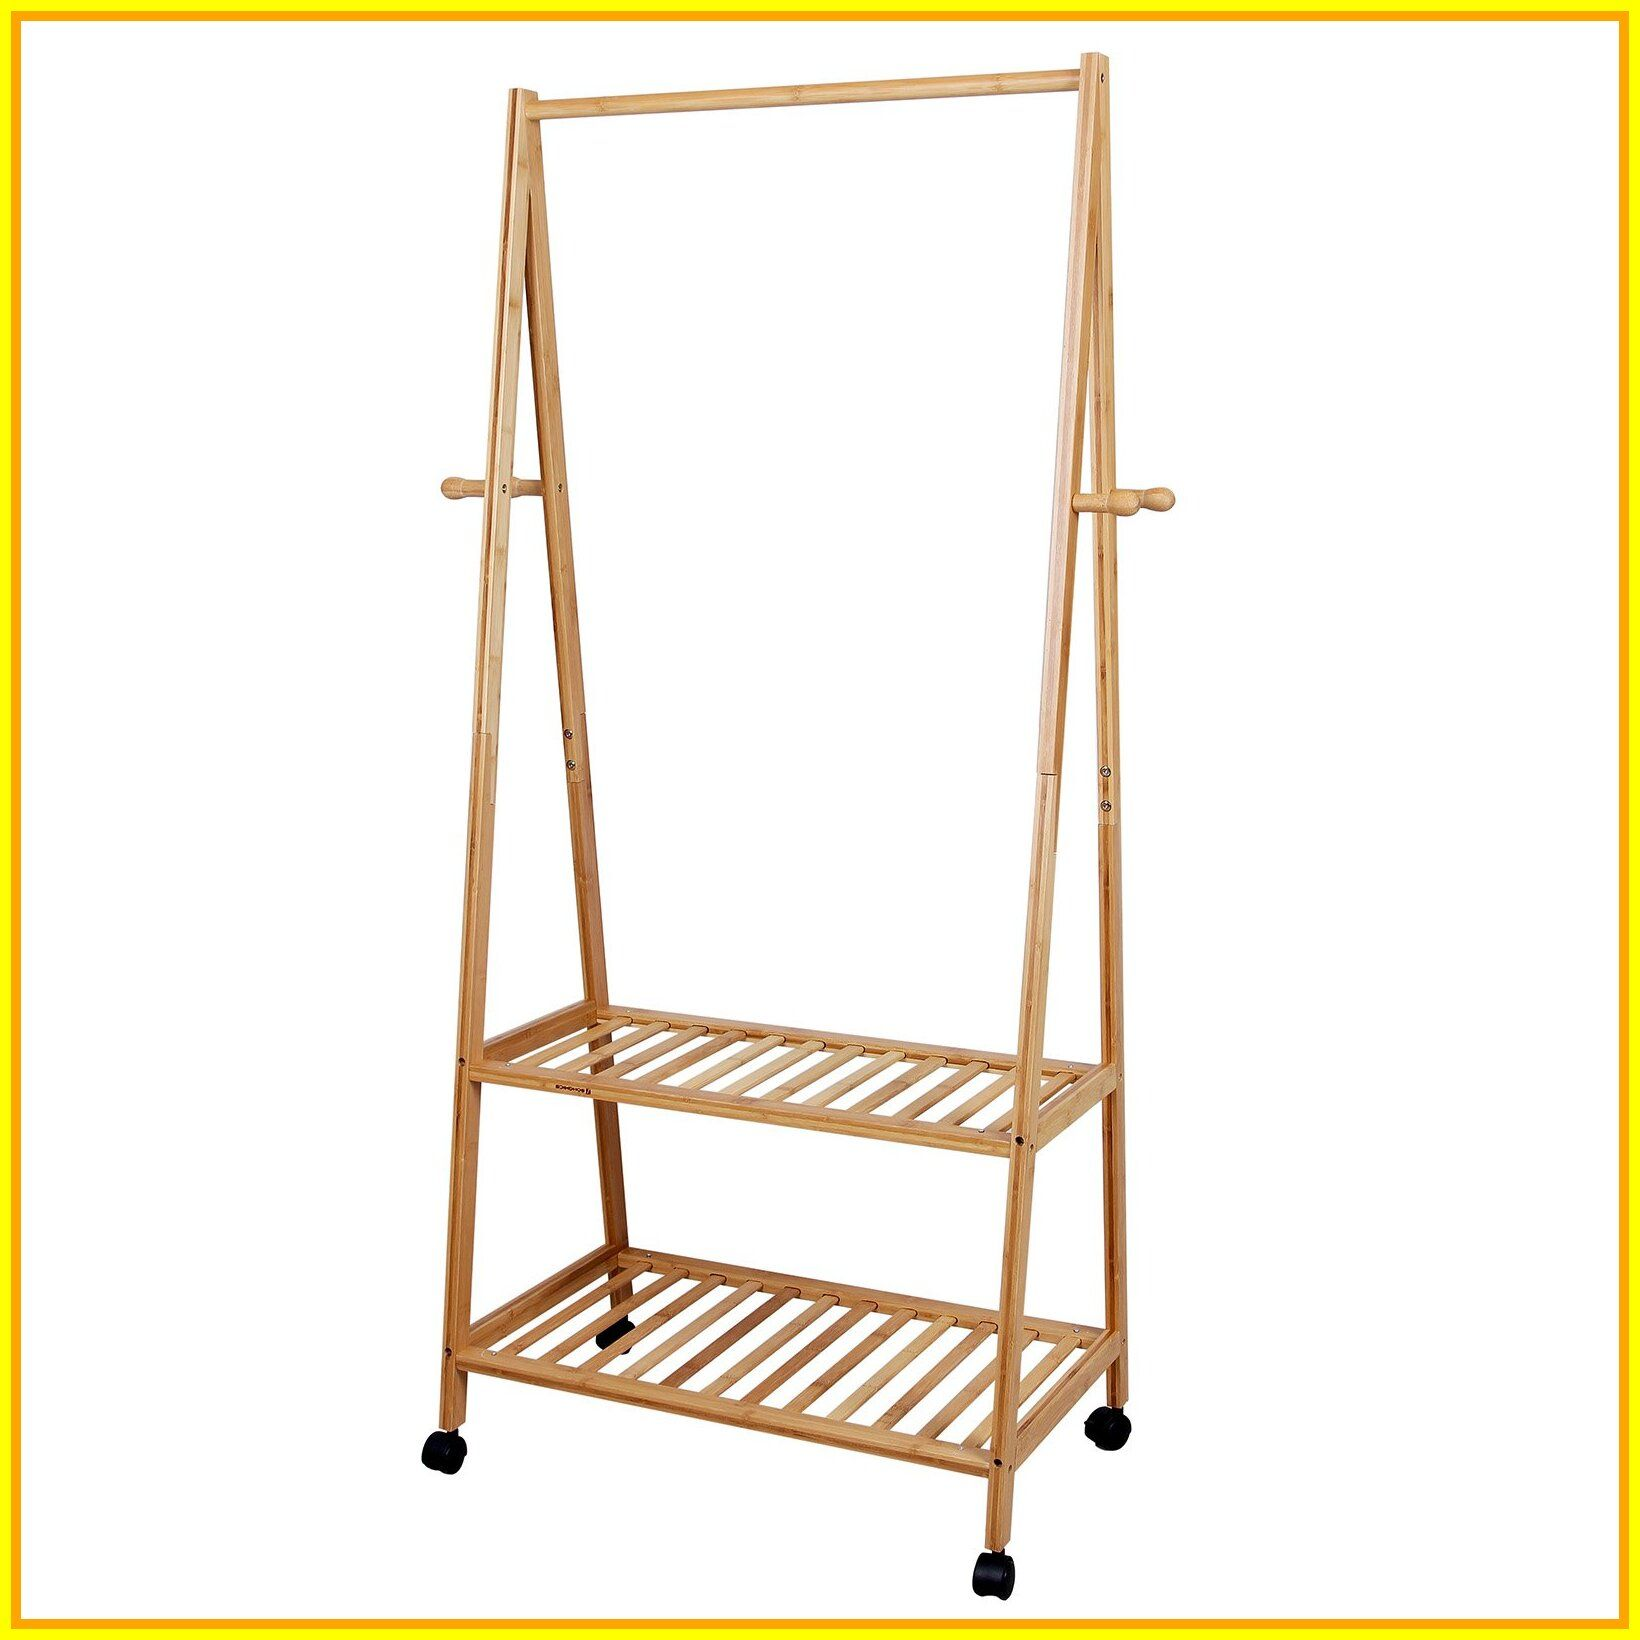 40 amazon clothes rack white #amazon #clothes #rack #white Please Click Link To Find More Reference,,, ENJOY!!